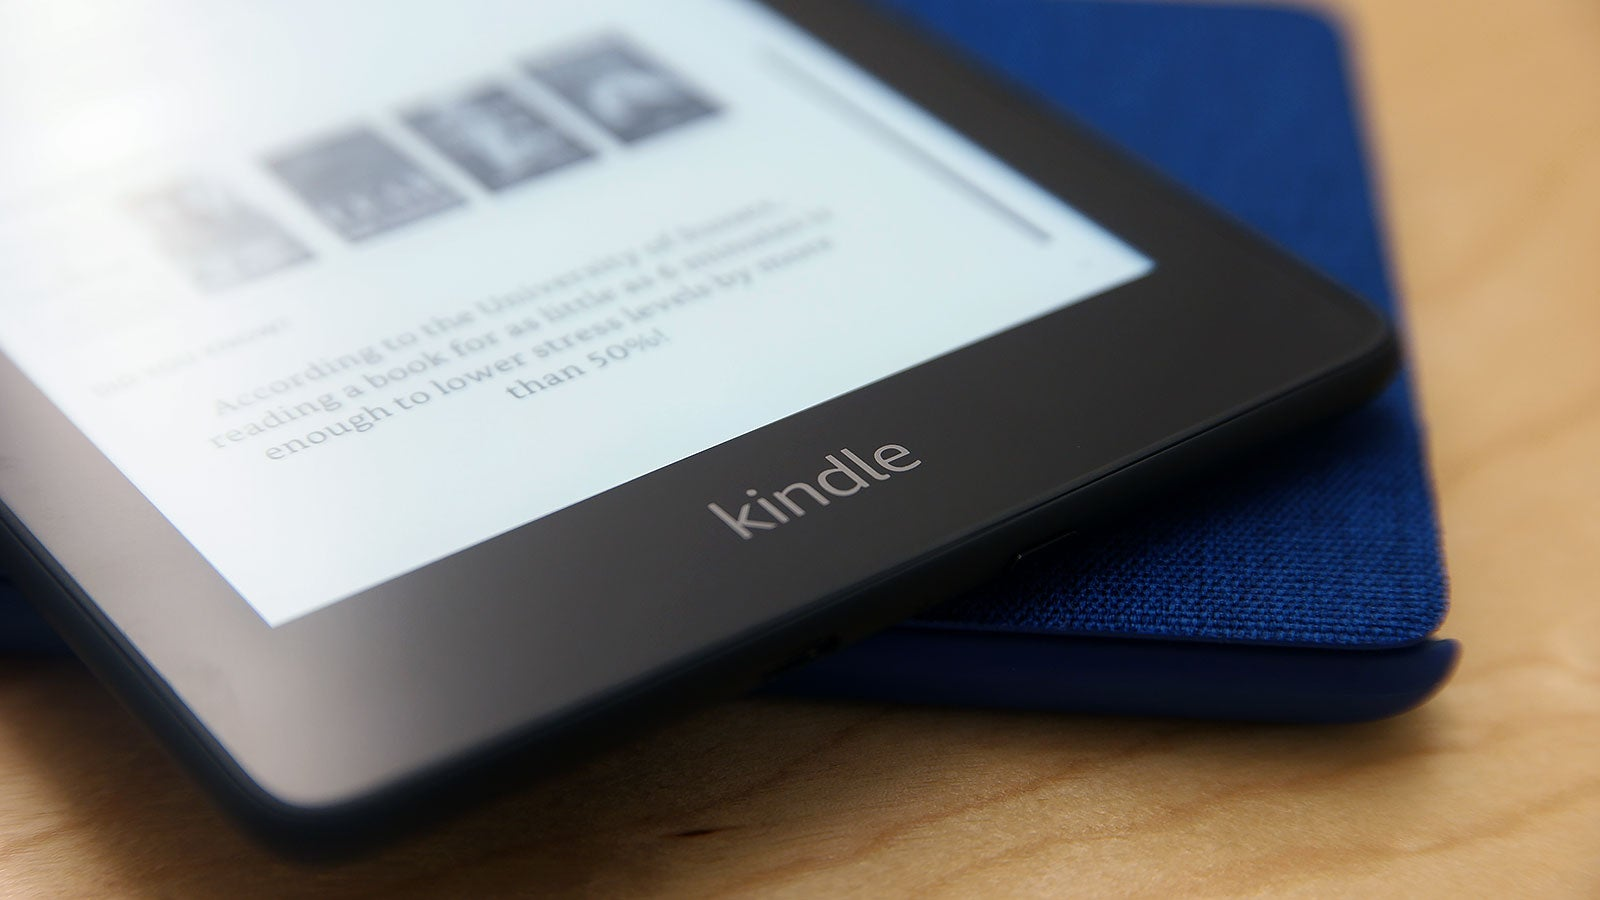 Load Up Your Kindle With These Book Deals